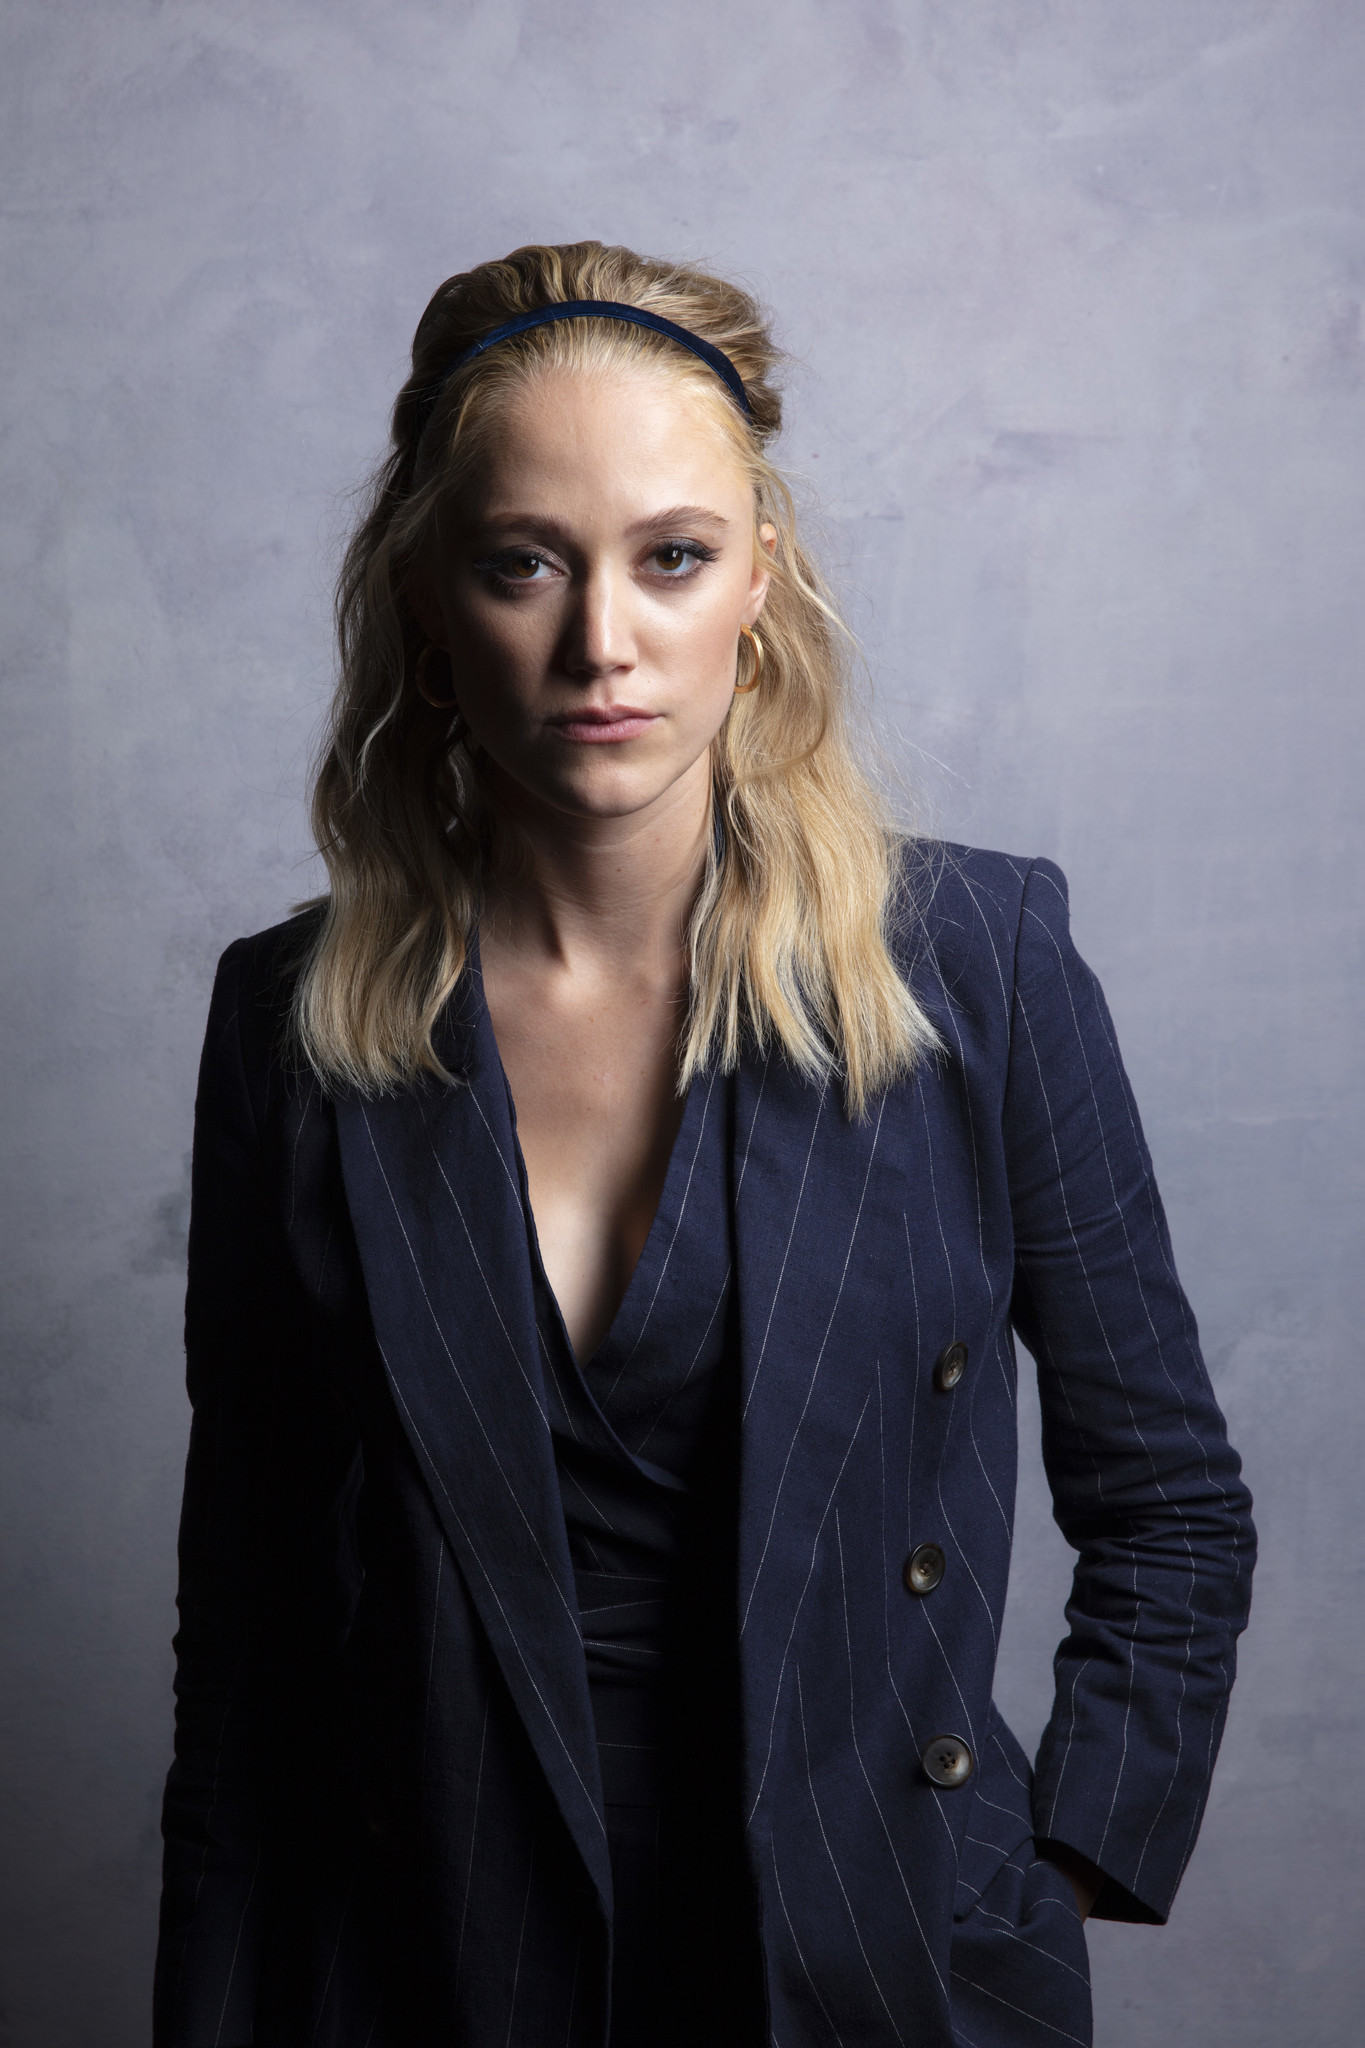 TORONTO, ONT. — SEPTEMBER 07, 2018-- Actresses Maika Monroe from the film